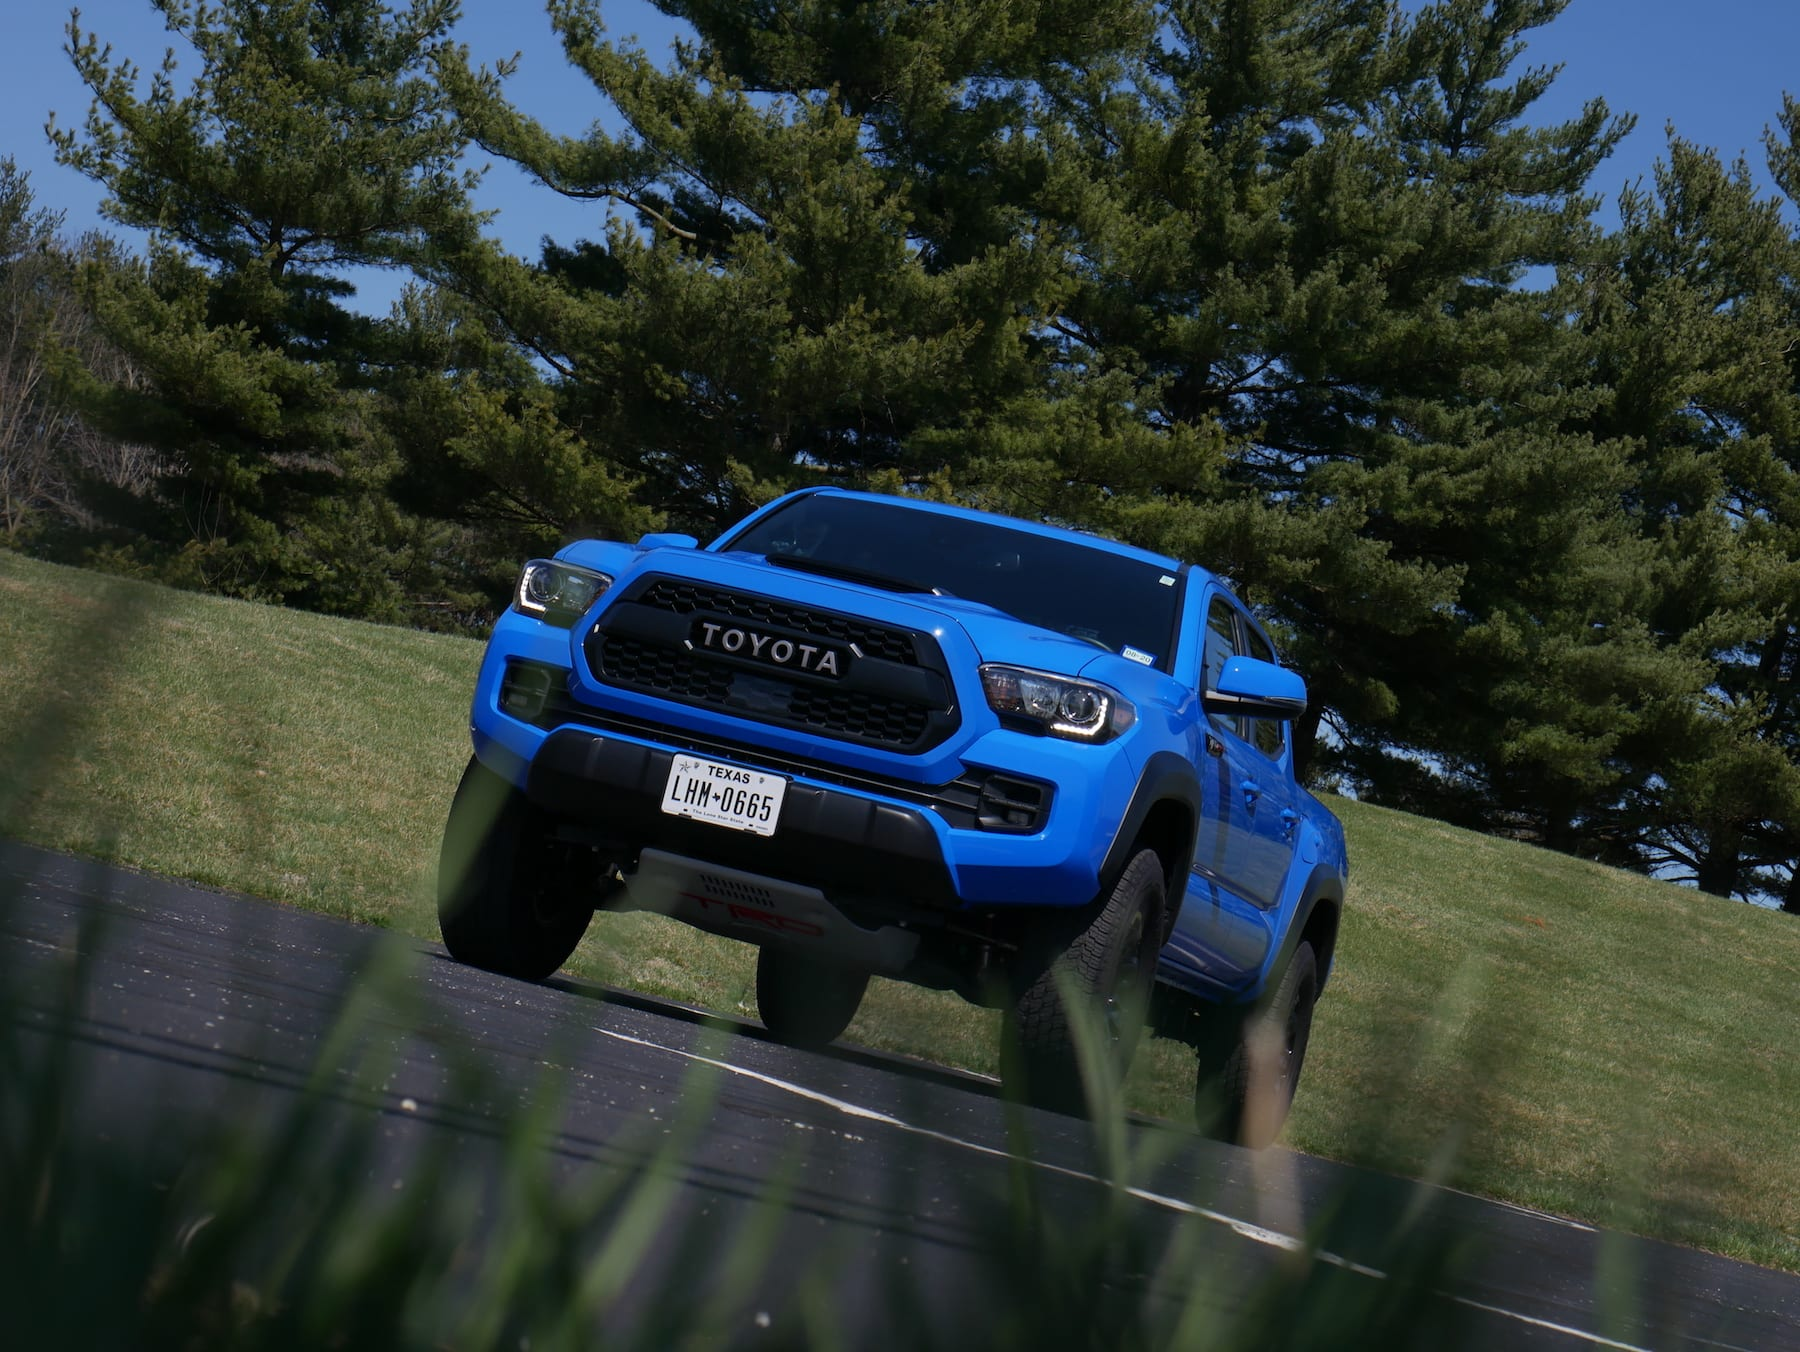 2019 Toyota Tacoma TRD Pro front low